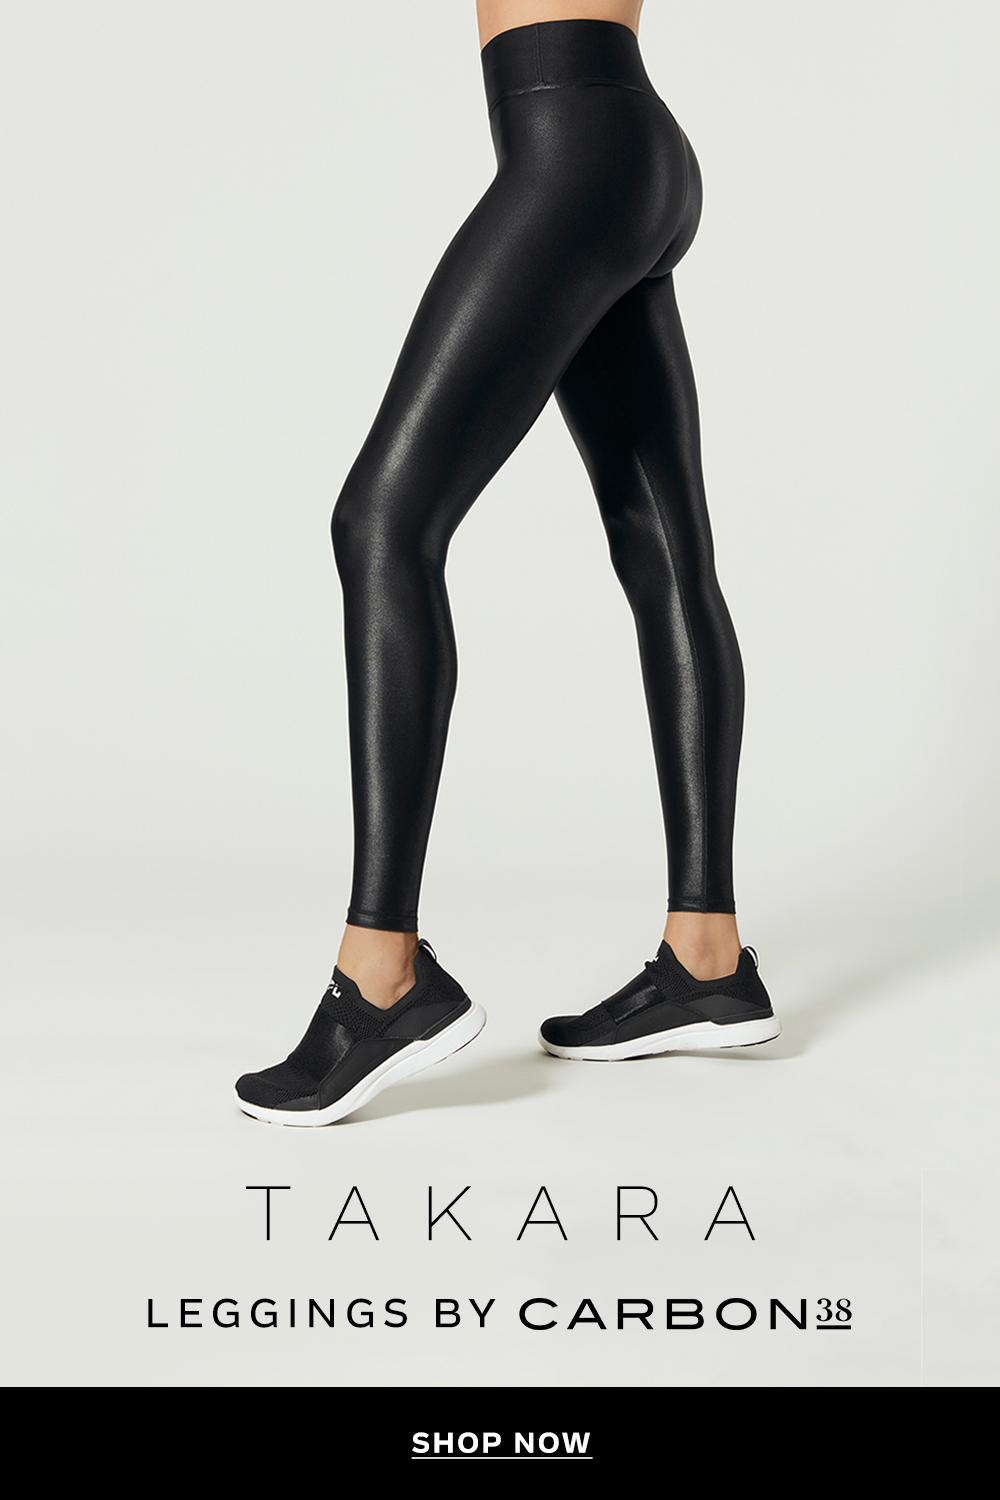 b913f61e65a833 Our best-selling legging, the Takara Legging. A glossy liquid finish adds  style and versatility for a sleek look that transitions from the studio to  the ...